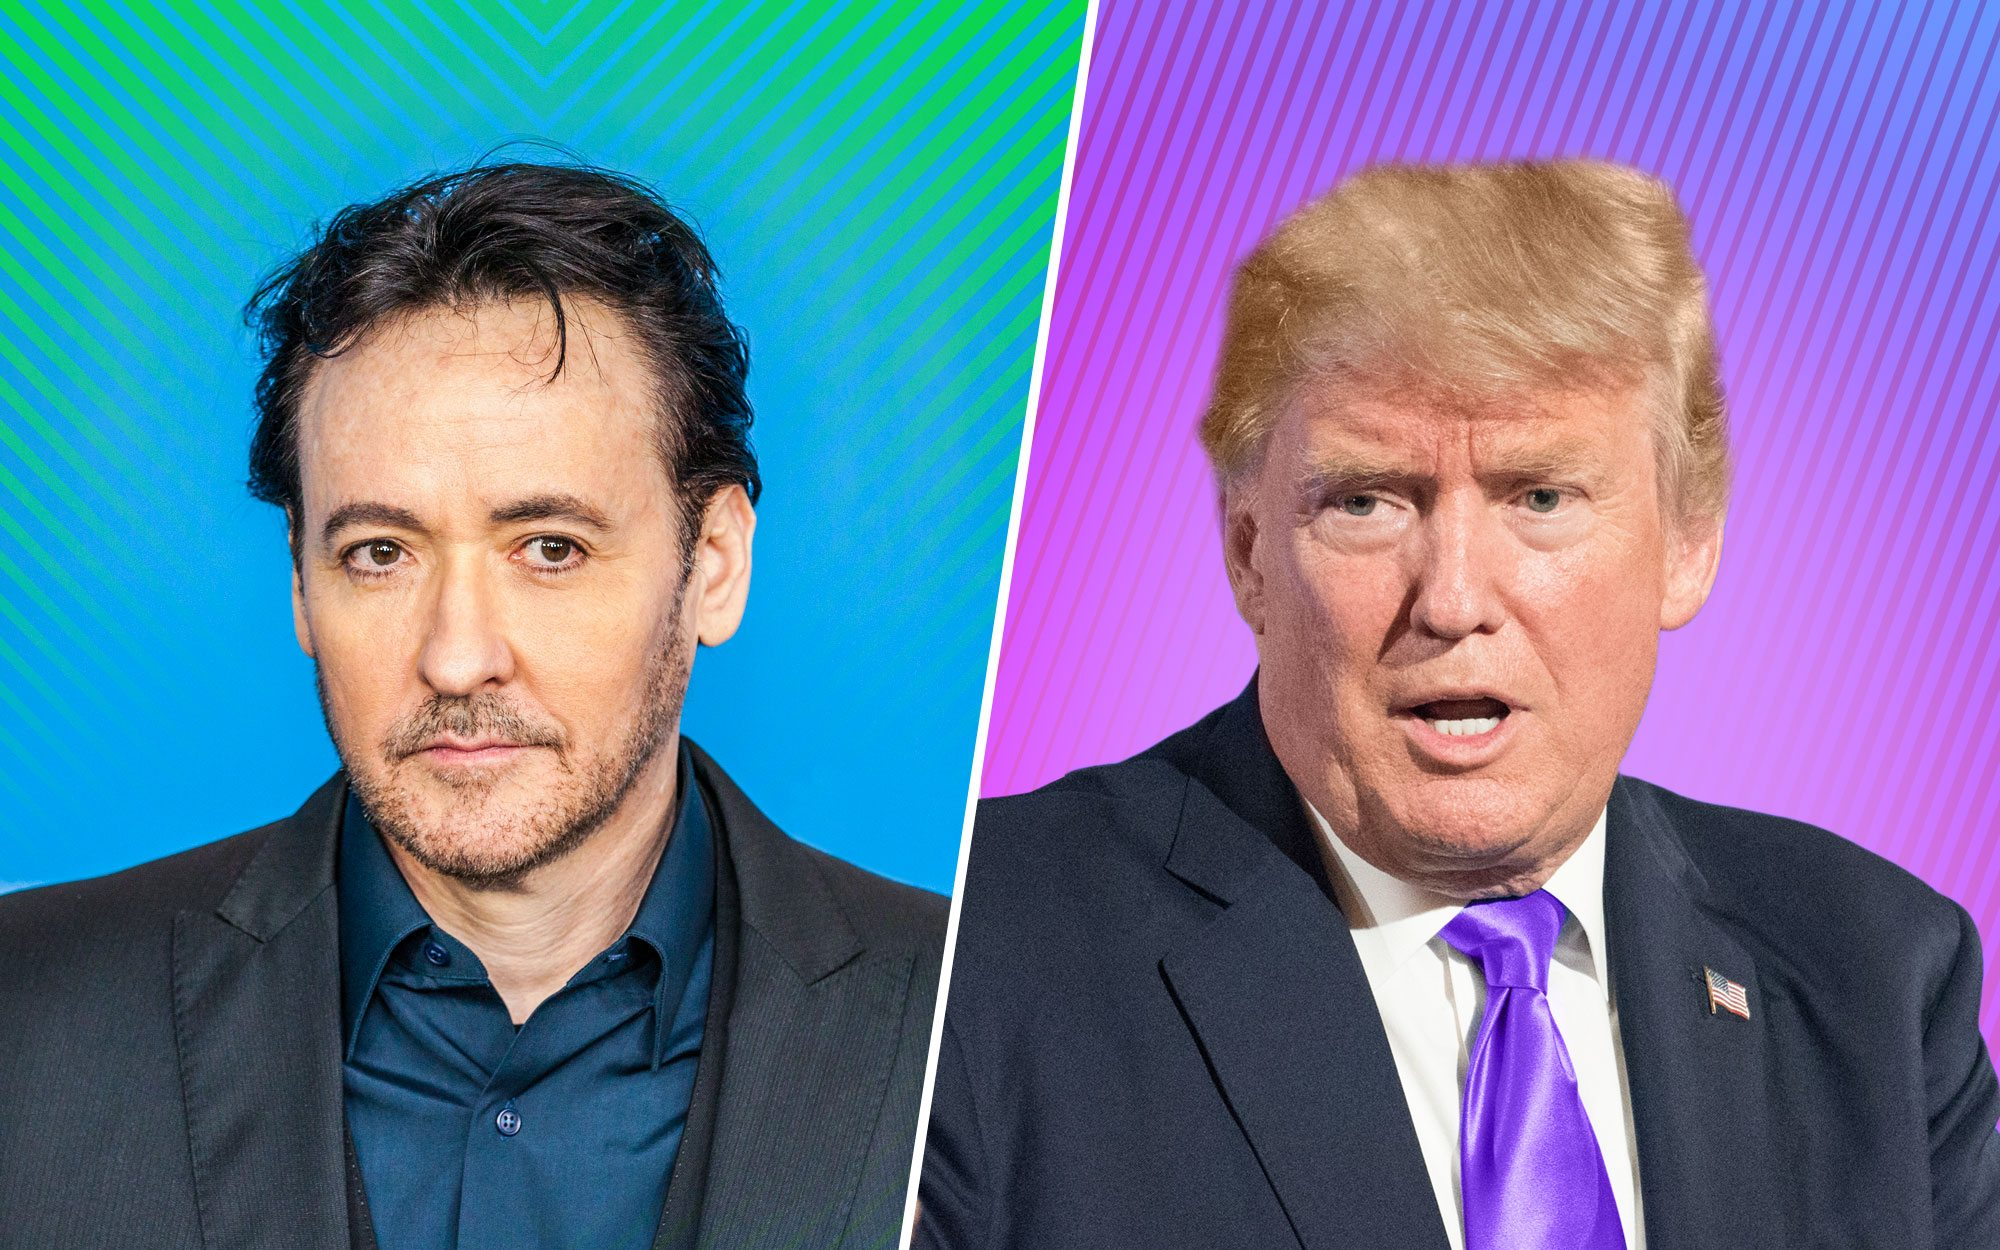 Hollywood Liberals Attack Trump Over New Zealand Shooting